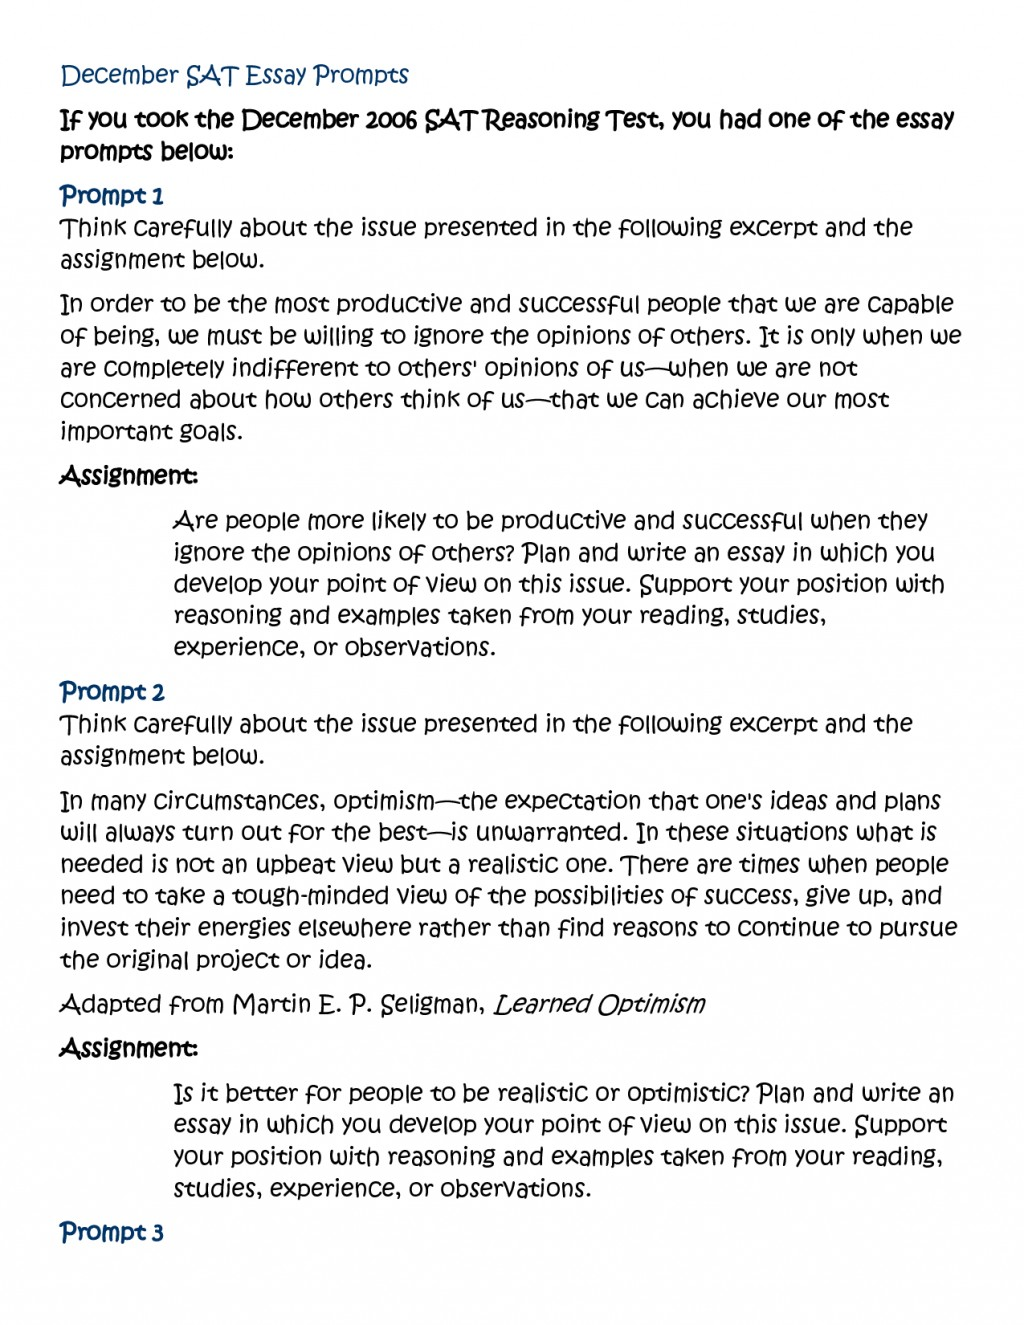 006 Essay Example What Is The Sat Ideas Of Questions Also Worksheet Grassmtnusa Com How To Write Faster And Exa Pdf Prepscholar Formula Examples Step By Breathtaking Score Out 24 Old 2017 Large